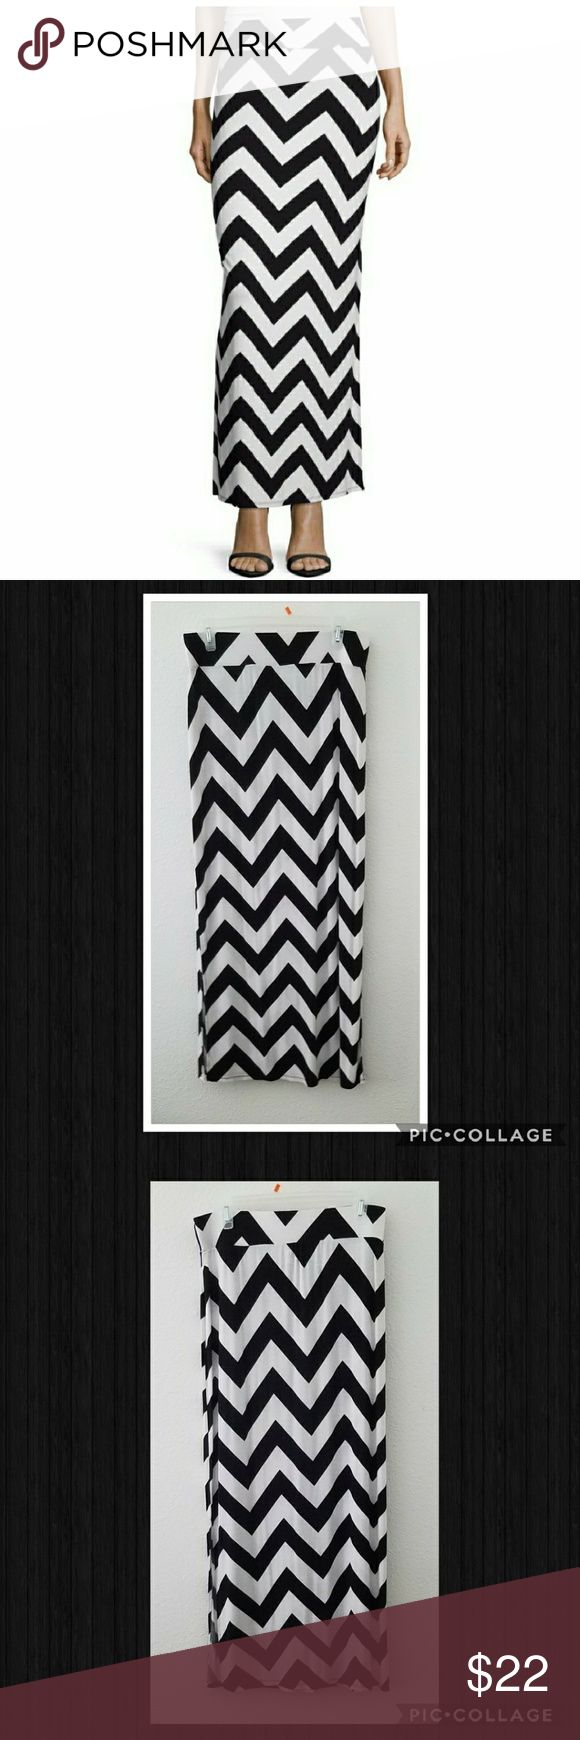 """🔺 Black & White Chevron Maxi Skirt {a.n.a} a.n.a black & white chevron maxi skirt with side slits. EUC, wore once! Fabric is a little sheer. Super soft fabric, perfect beachwear!  95% rayon, 5% spandex • hand wash only  Length: 38"""" Waist: 15.75"""" Slits are 16"""" long on each side a.n.a Skirts Maxi"""